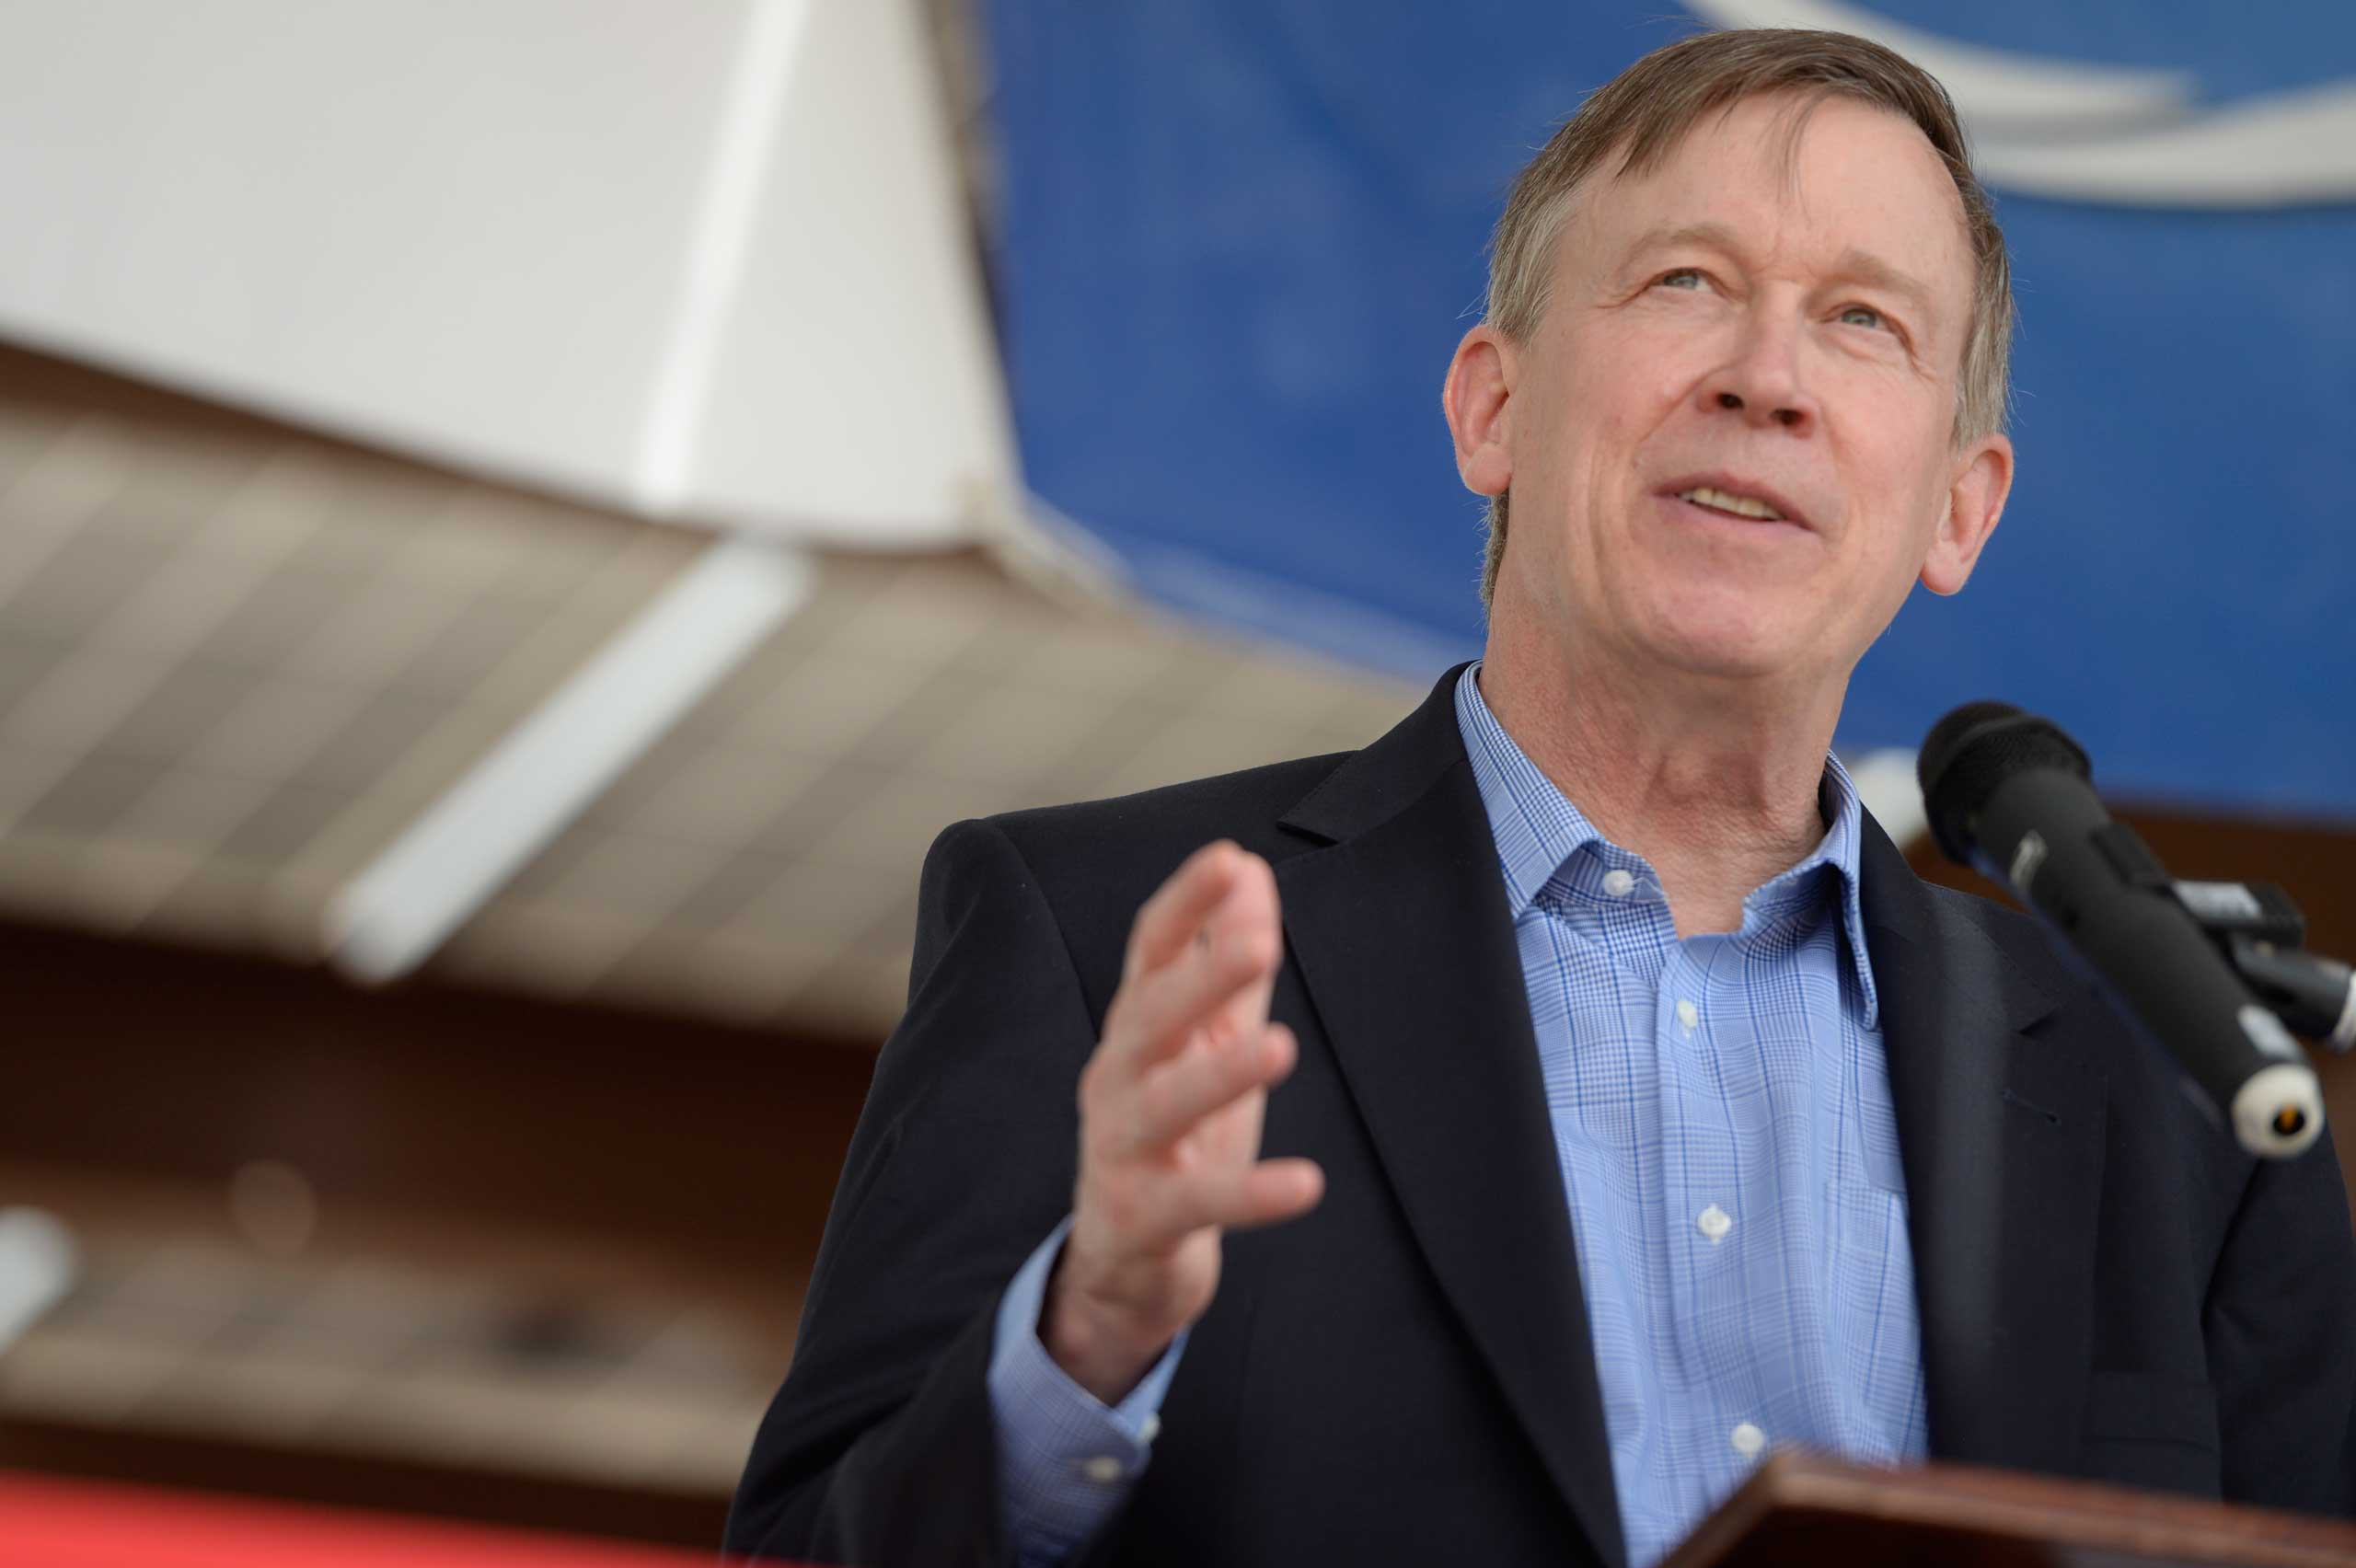 Governor John Hickenlooper talks about the new 1MW solar array Thursday, May 14, 2015 at the Intel Corporation in Fort Collins, Colorado.